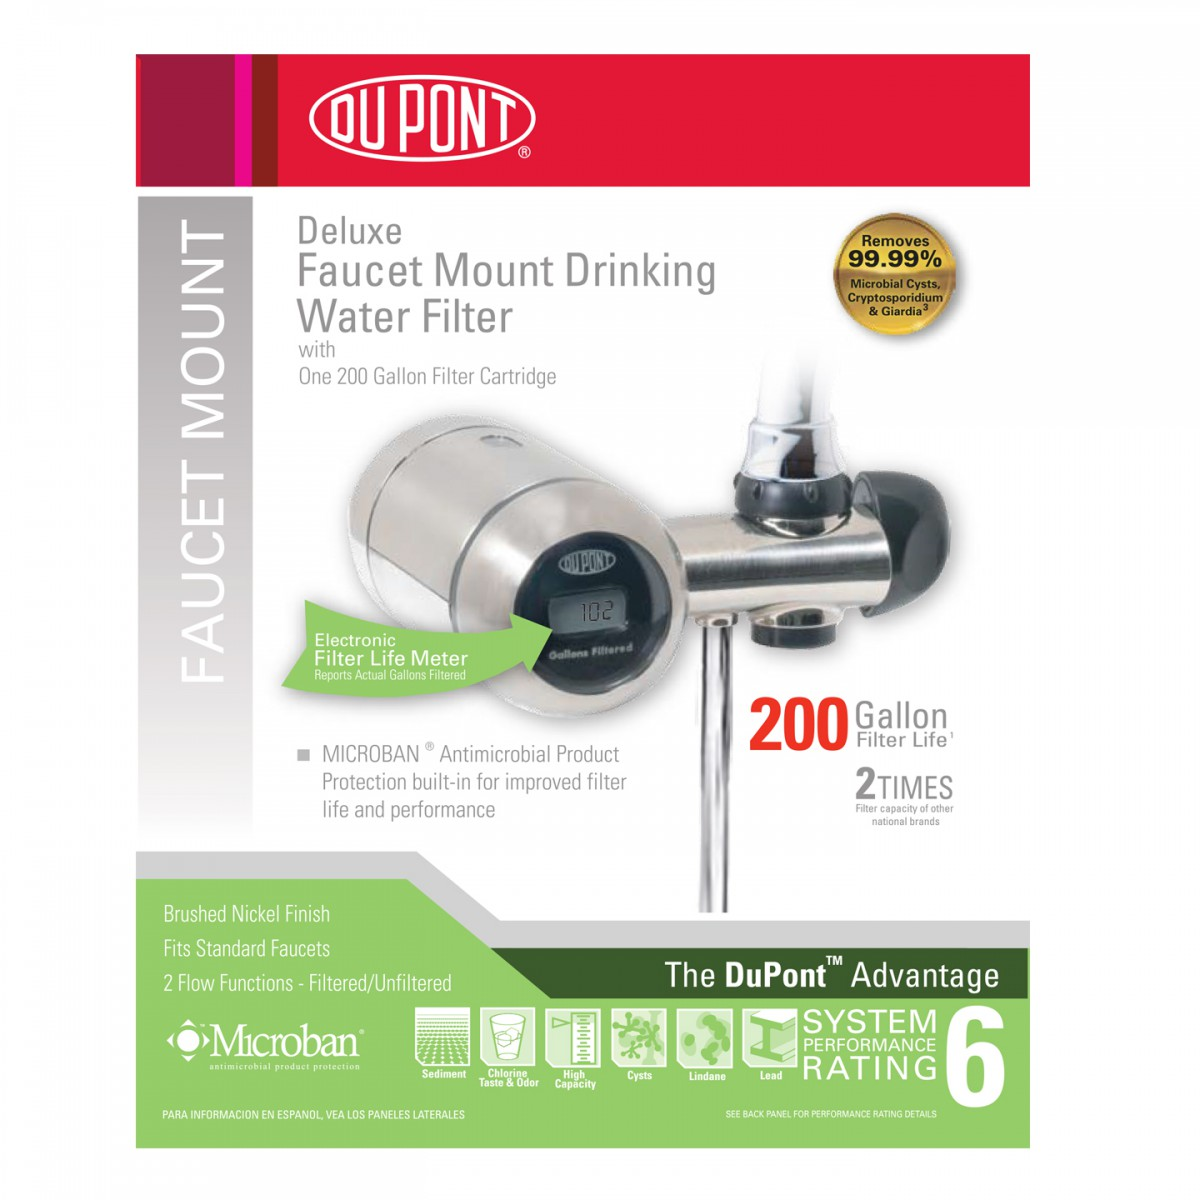 Wffm350xbn Deluxe Faucet Mount Drinking Water Filter By Dupont